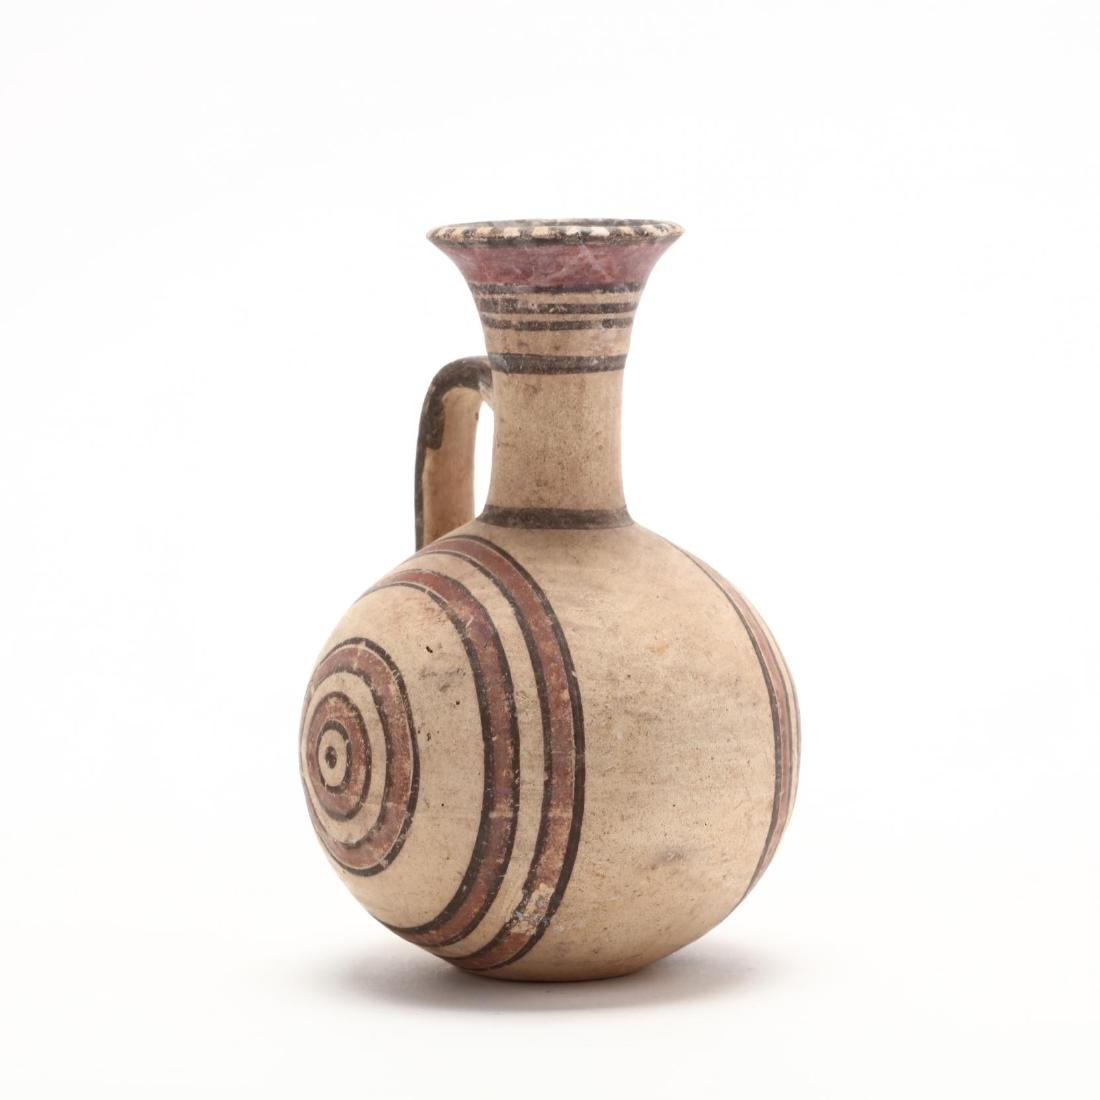 Cypro-Archaic Barrel Flask - 2